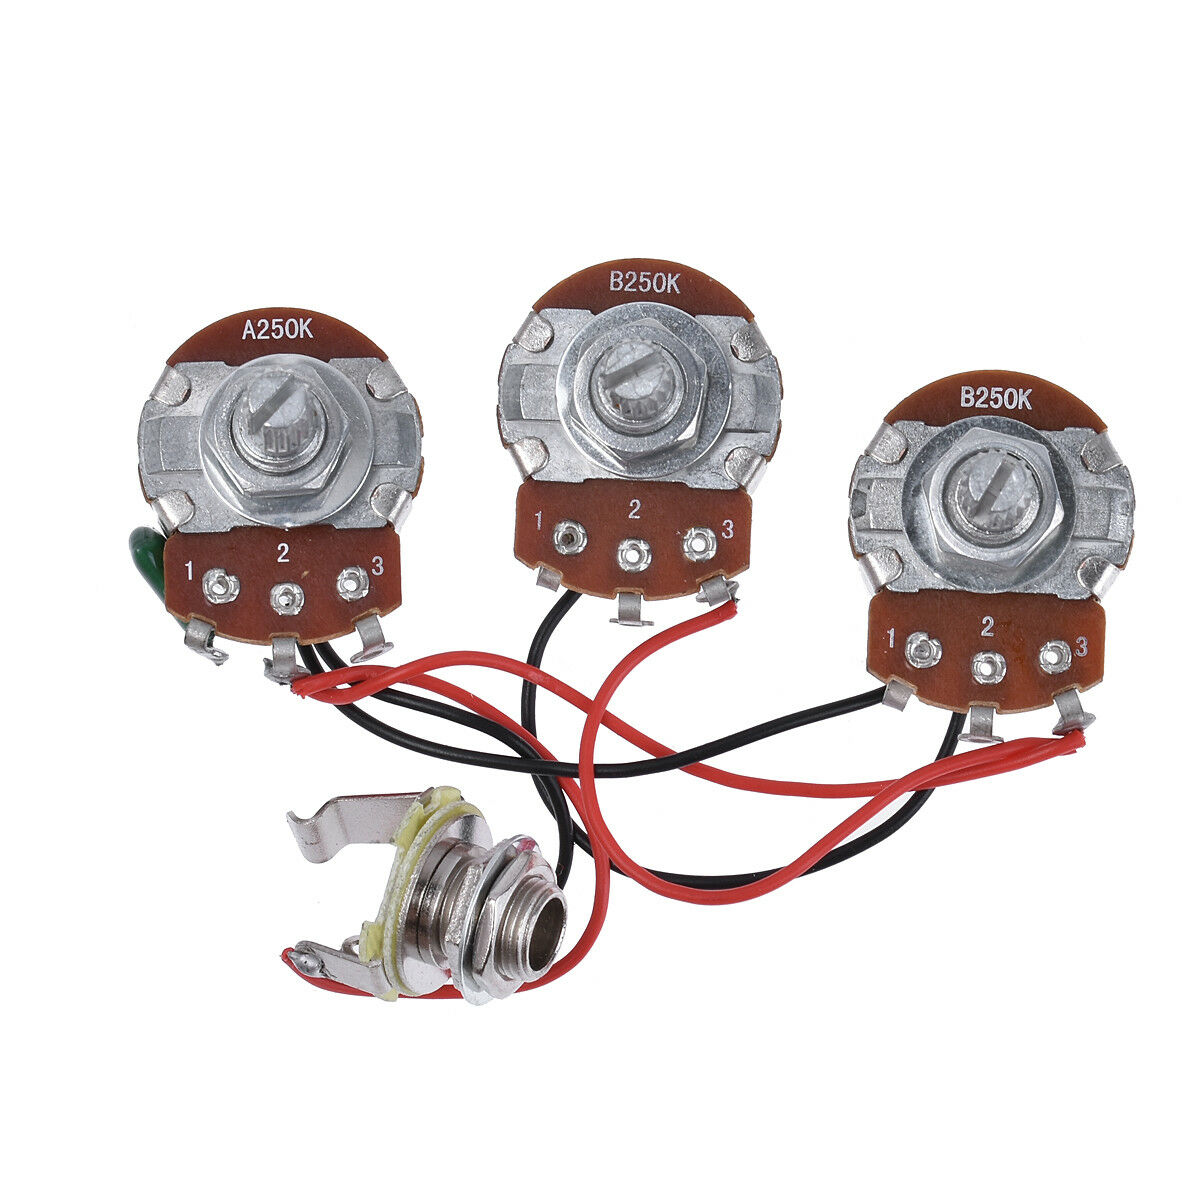 hight resolution of bass wiring harness prewired kit 250k pots 2v 1t for jazz bass guitar parts